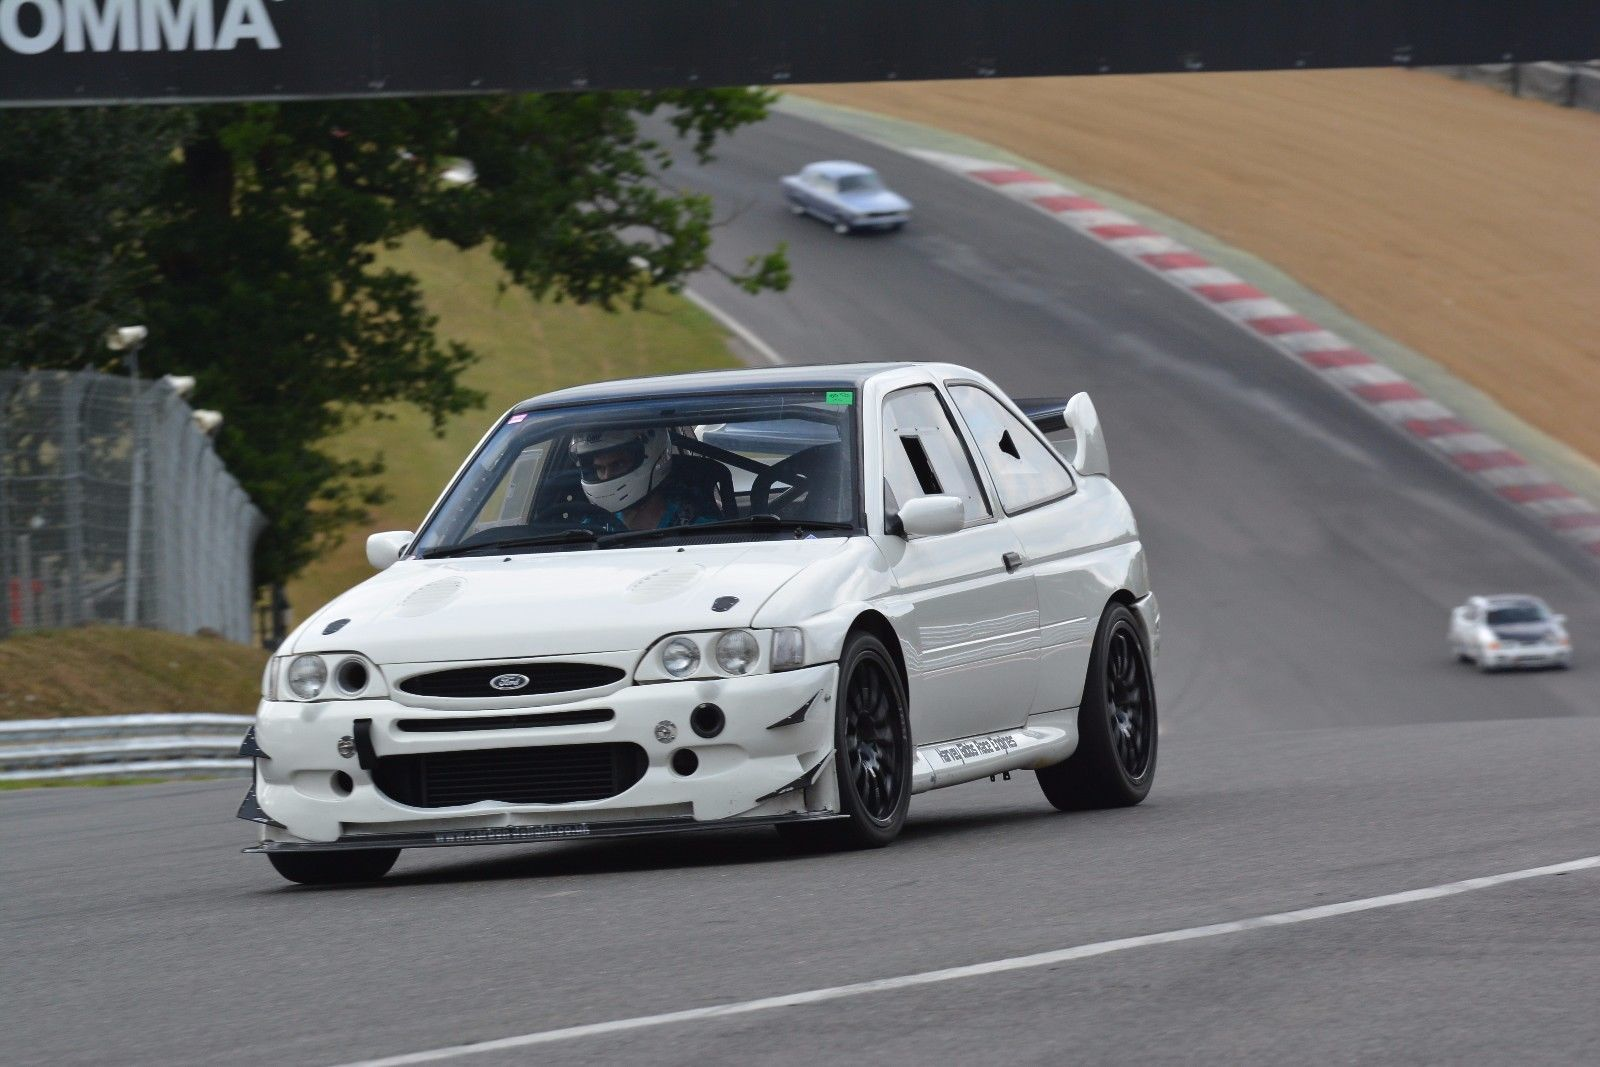 We found this escort cosworth ex time attack track car on eBay ...